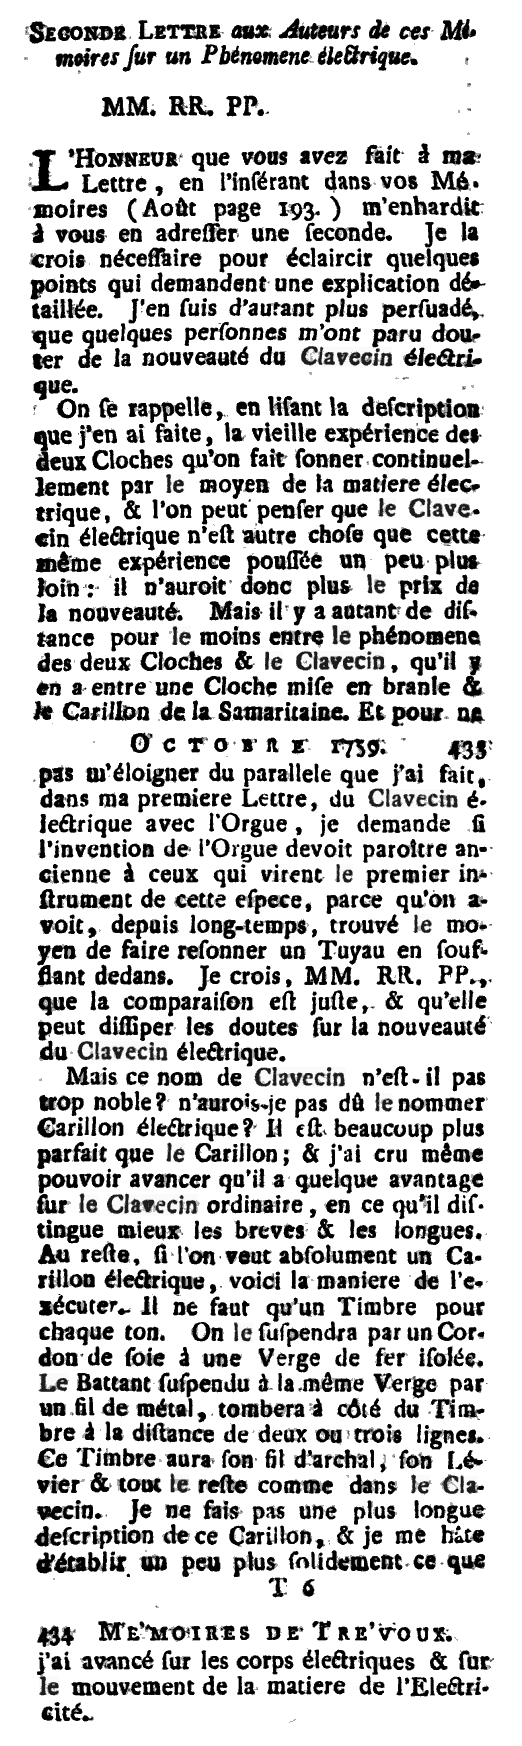 "Description of the Clavecin by Marc Michel Rey, 1759 in his ""Le journal des sçavans, combiné avec les mémoires de Trévoux"""